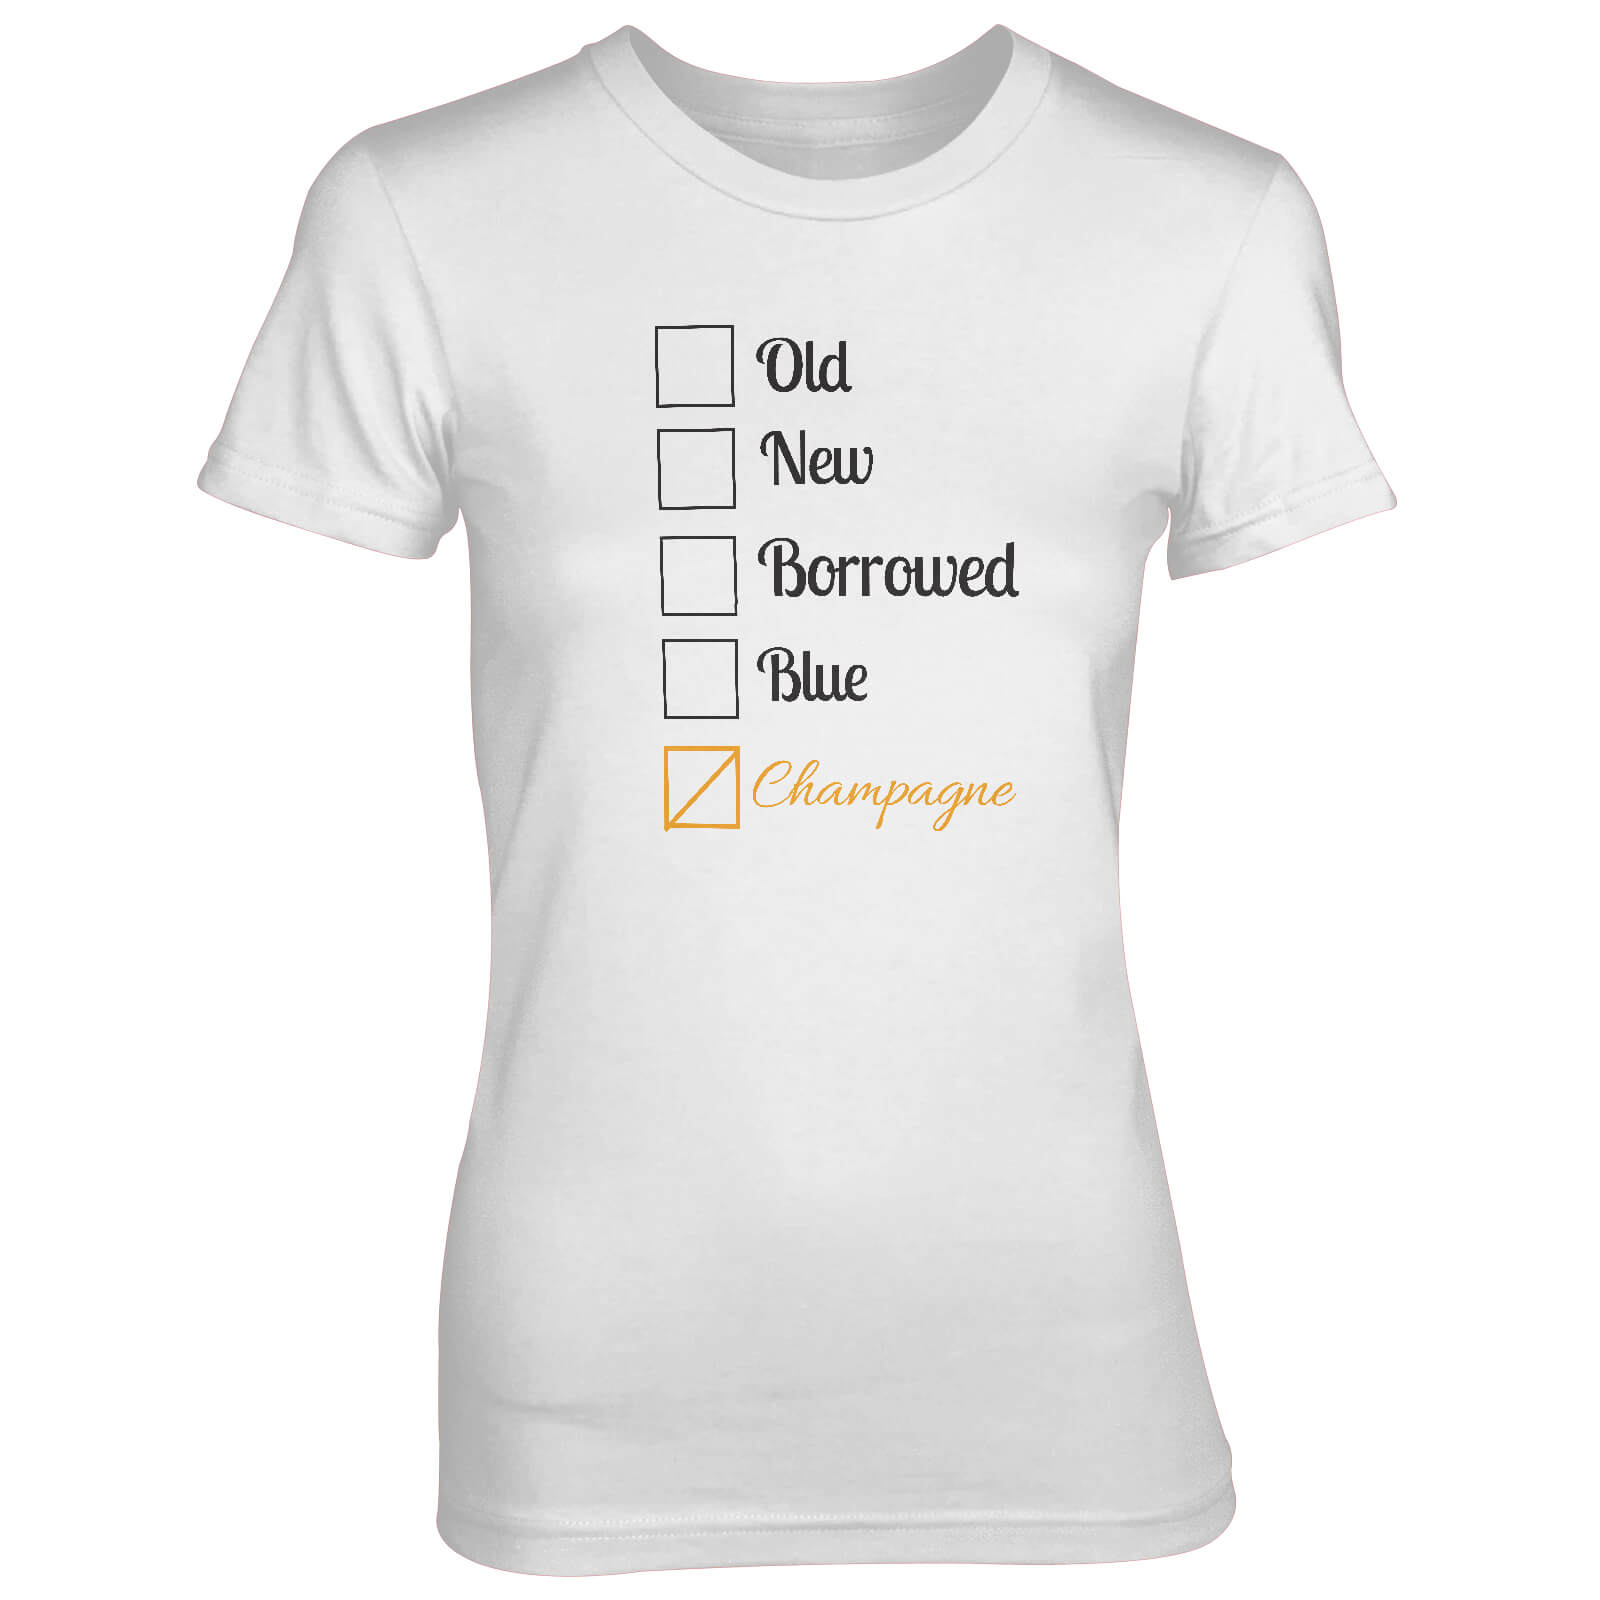 Old New Borrowed Blue Champagne Women